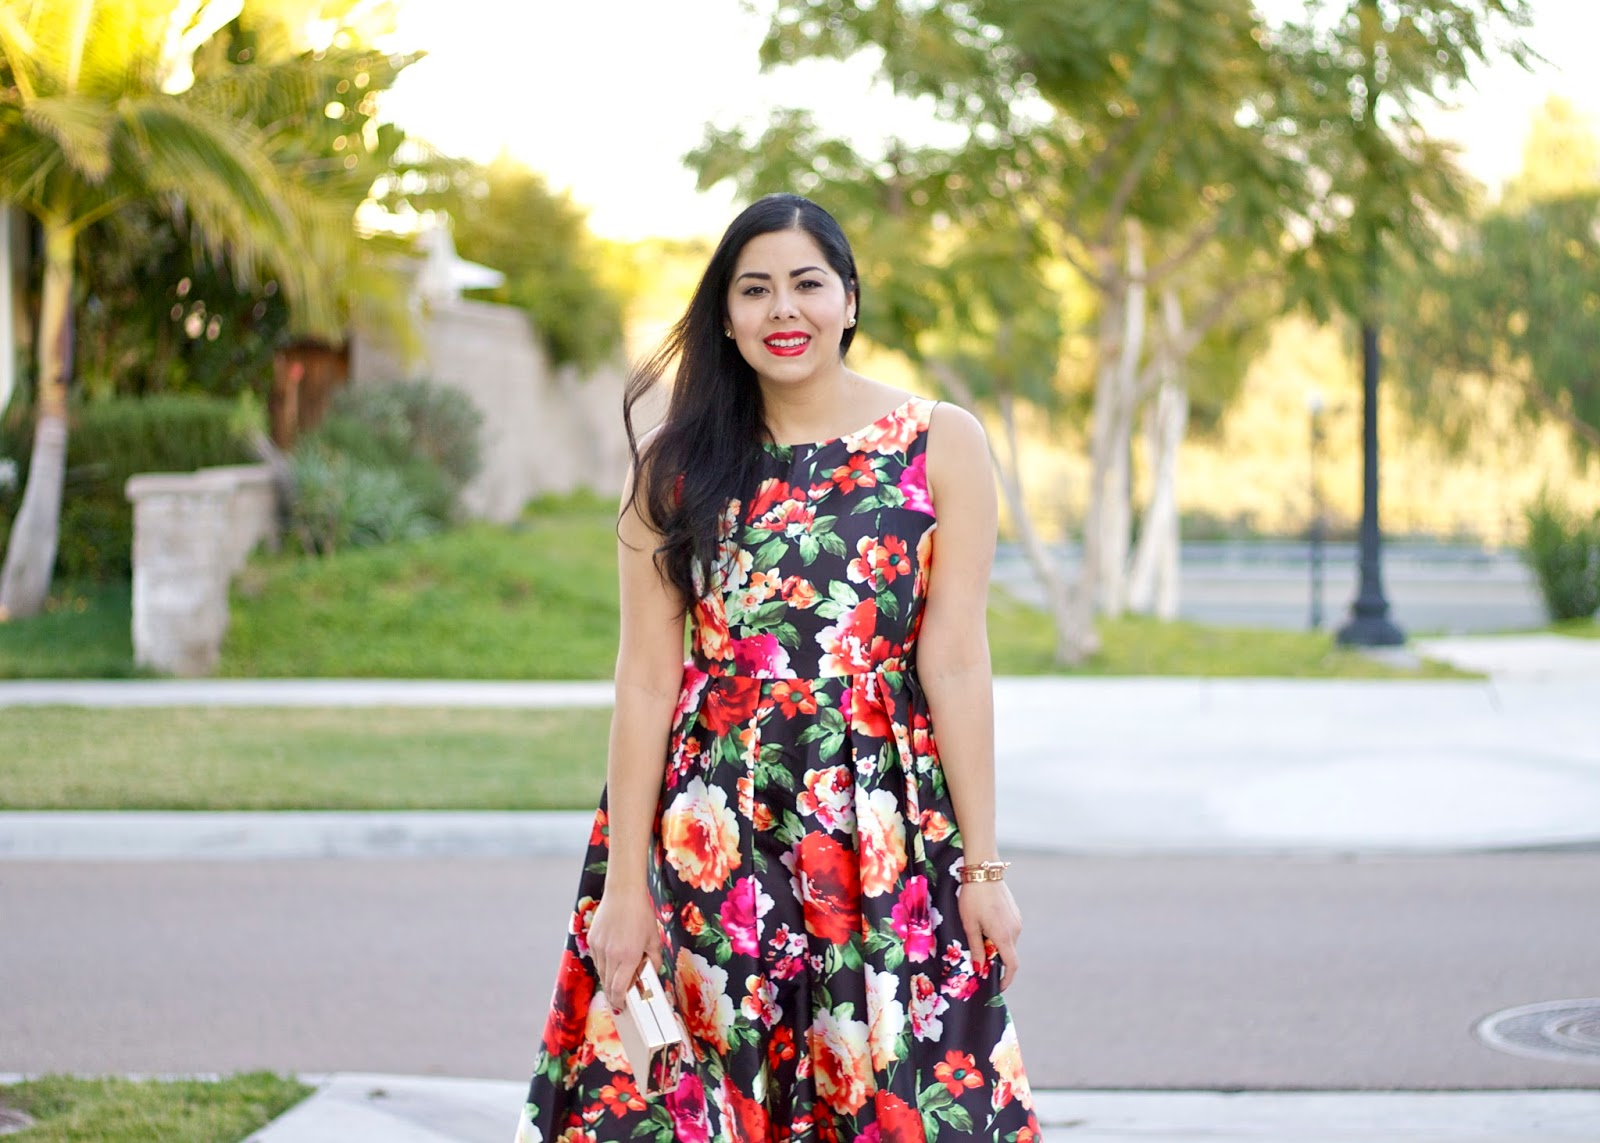 Bare Minerals Red lips, bold print dress, chic fashion blogger, latina fashion blogger